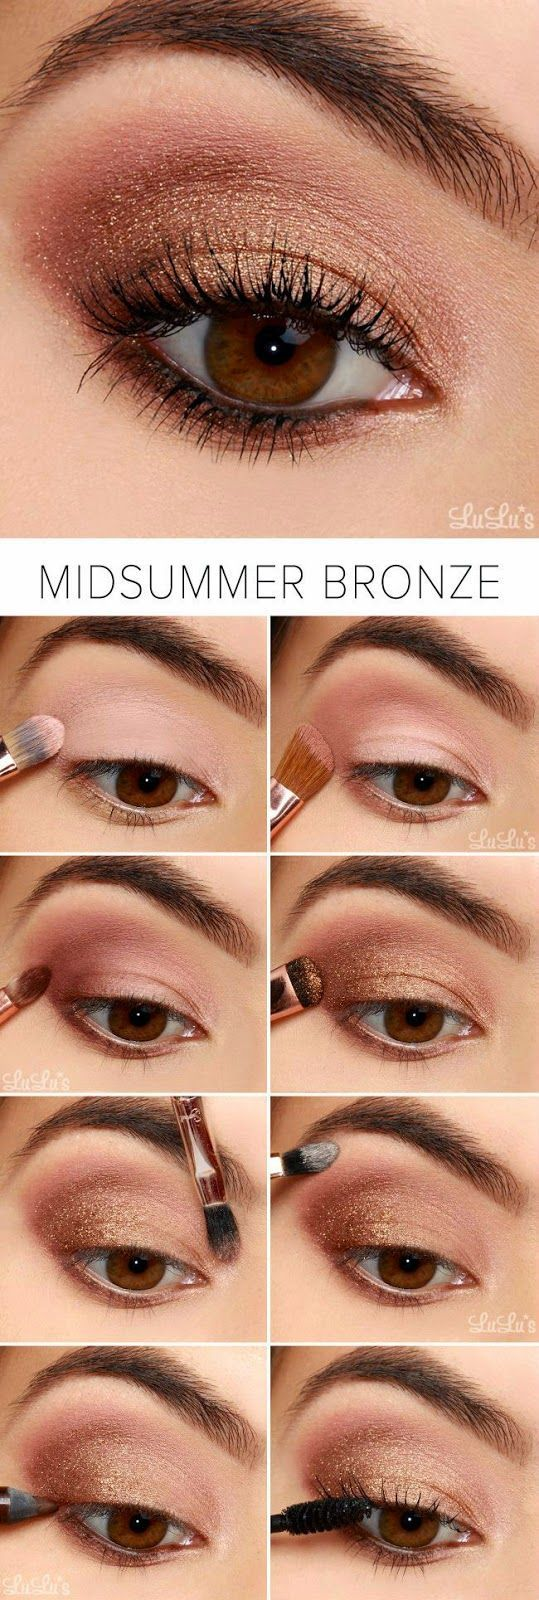 Are You Ready For A Beach Party? No, You Are Not Till You Don`t See These Awesome Makeup Ideas! - More on http://ideasforbeautypic.com